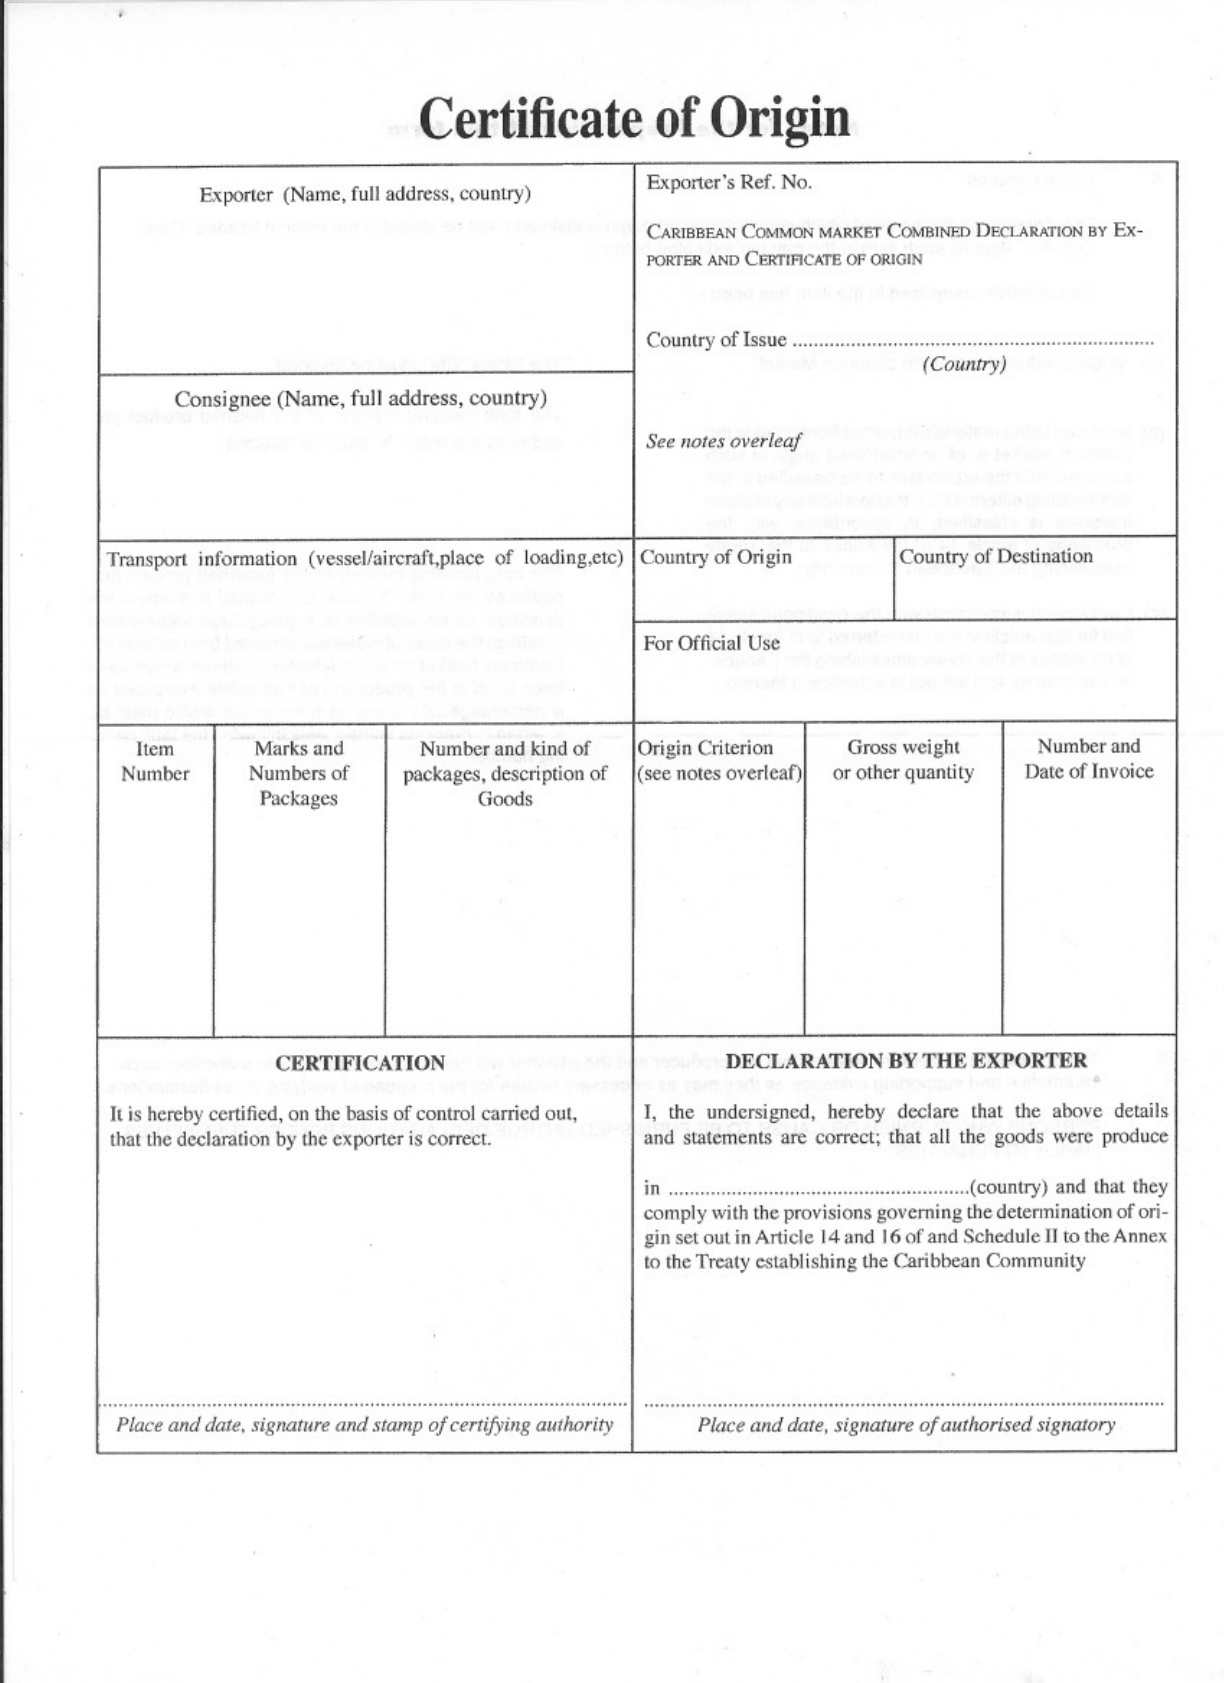 Generic certificate of origin template social work resume sample download caricom certificate of origin template for free tidyform bg1 caricom certificate of origin templatehtml 1betcityfo Gallery